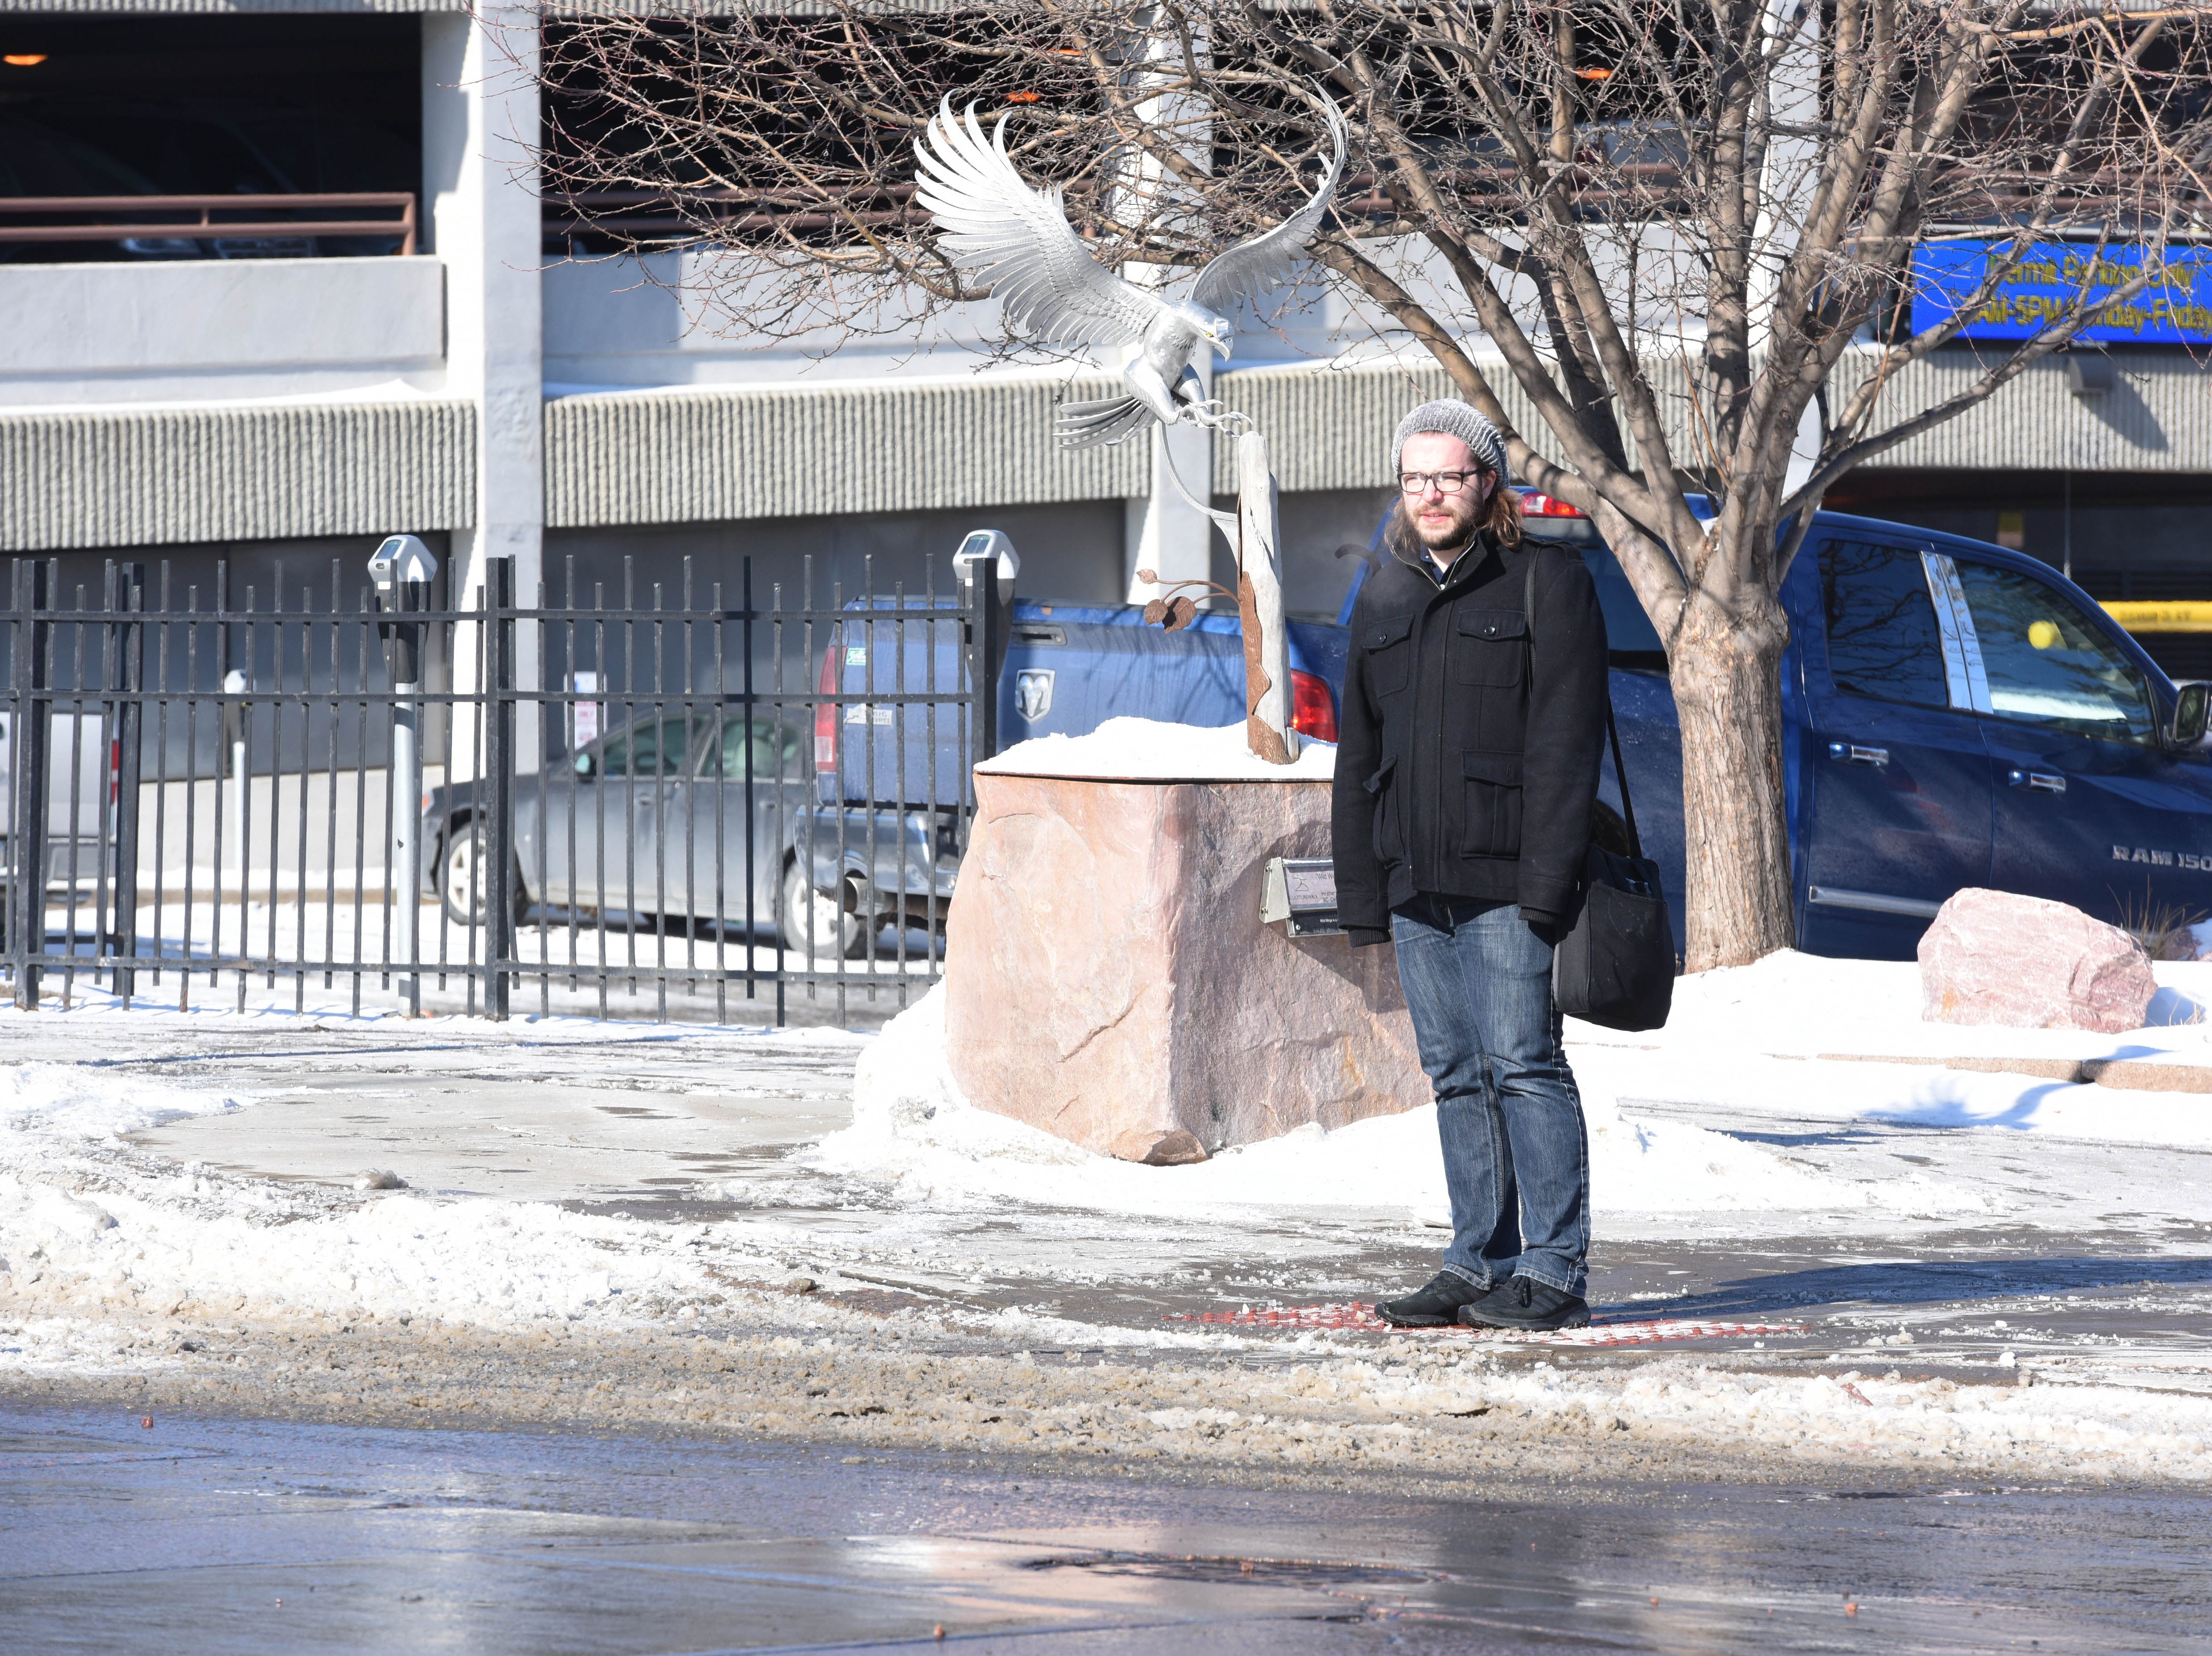 Luke Tatge waits at a cross walk in downtown Sioux Falls, S.D., Monday, Jan. 28, 2019.